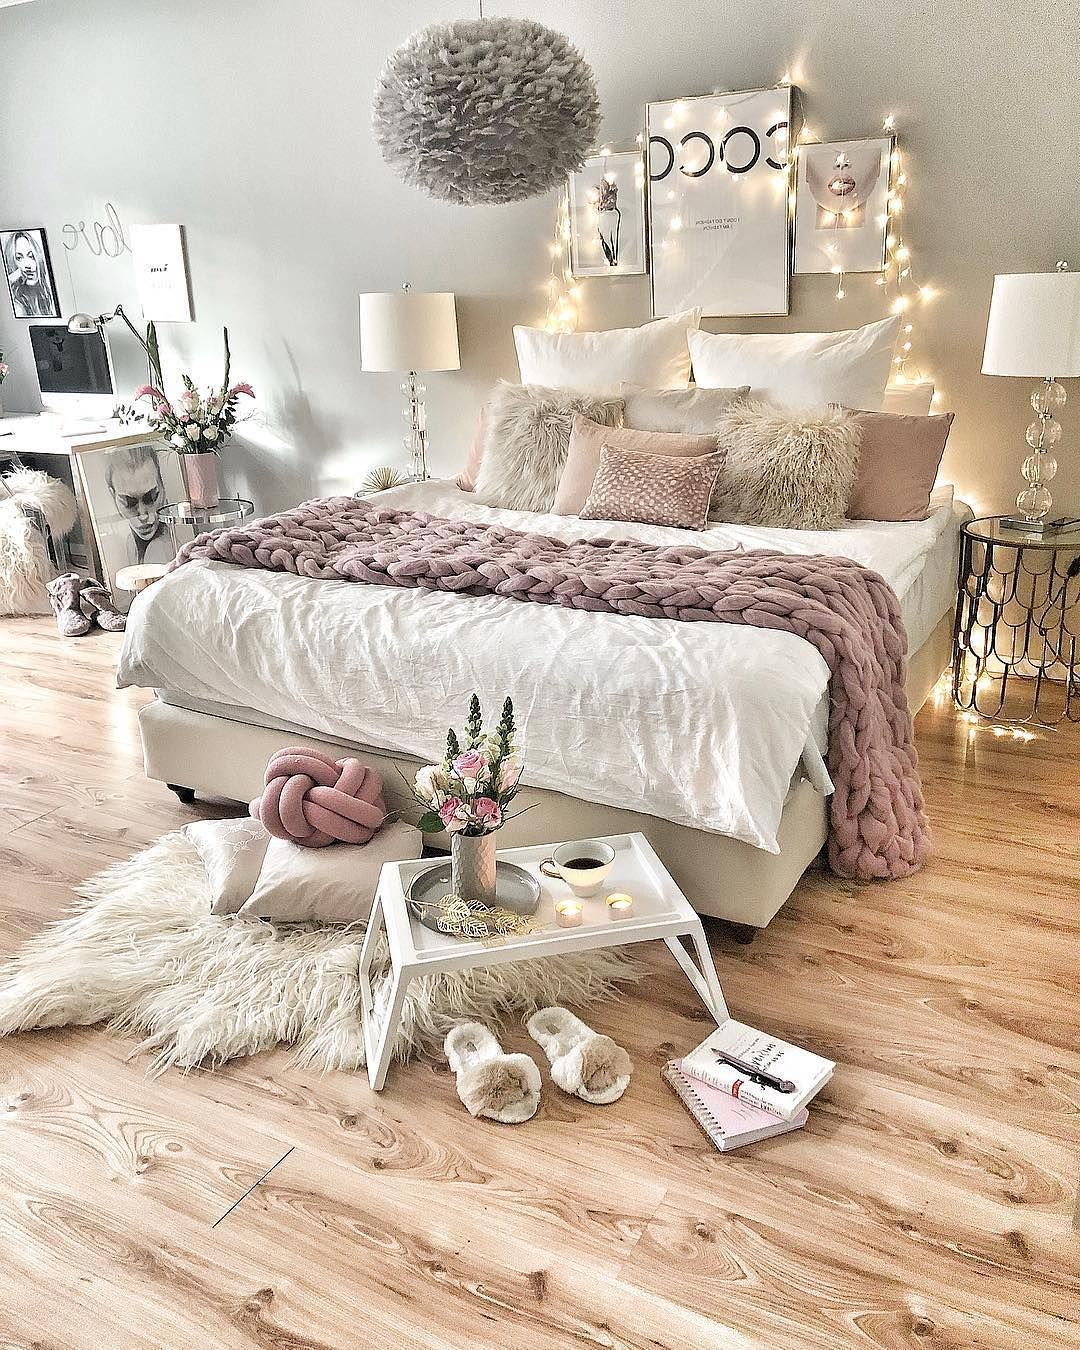 Gorgeous Yay Or Nay Avec Images Idee Chambre Idees Deco